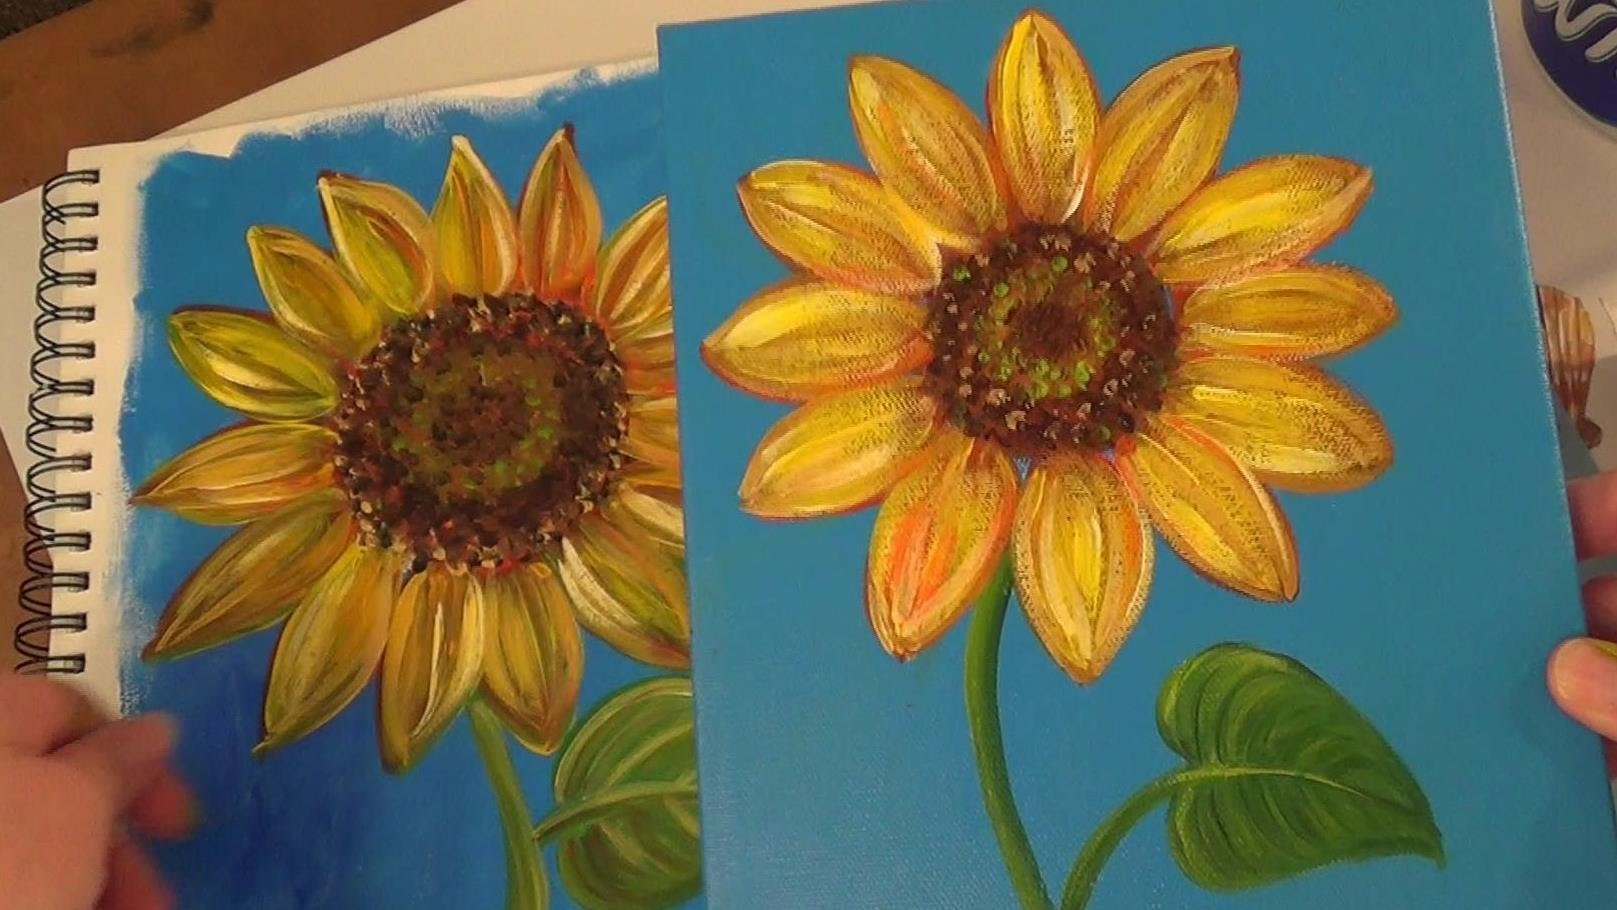 sunflower painting tutorial free easy acrylic painting lesson for beginners how to paint flowers. Black Bedroom Furniture Sets. Home Design Ideas